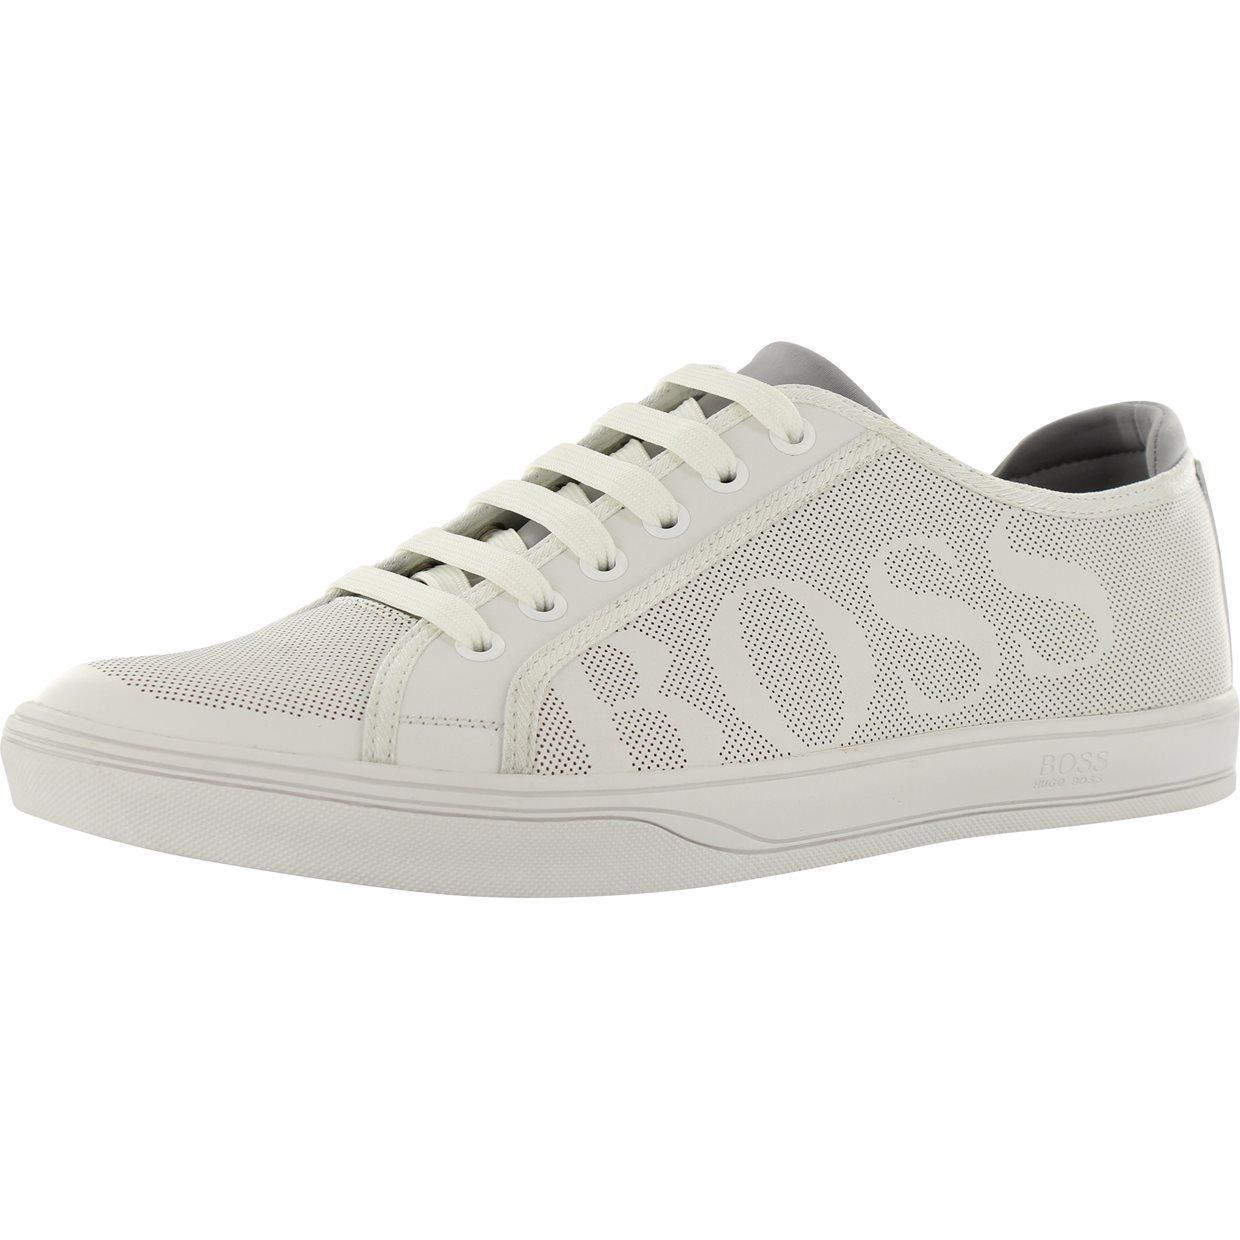 4456a60799 Hugo Boss Attitude Tennis Inspired Leather Sneakers | FairwayStyles.com